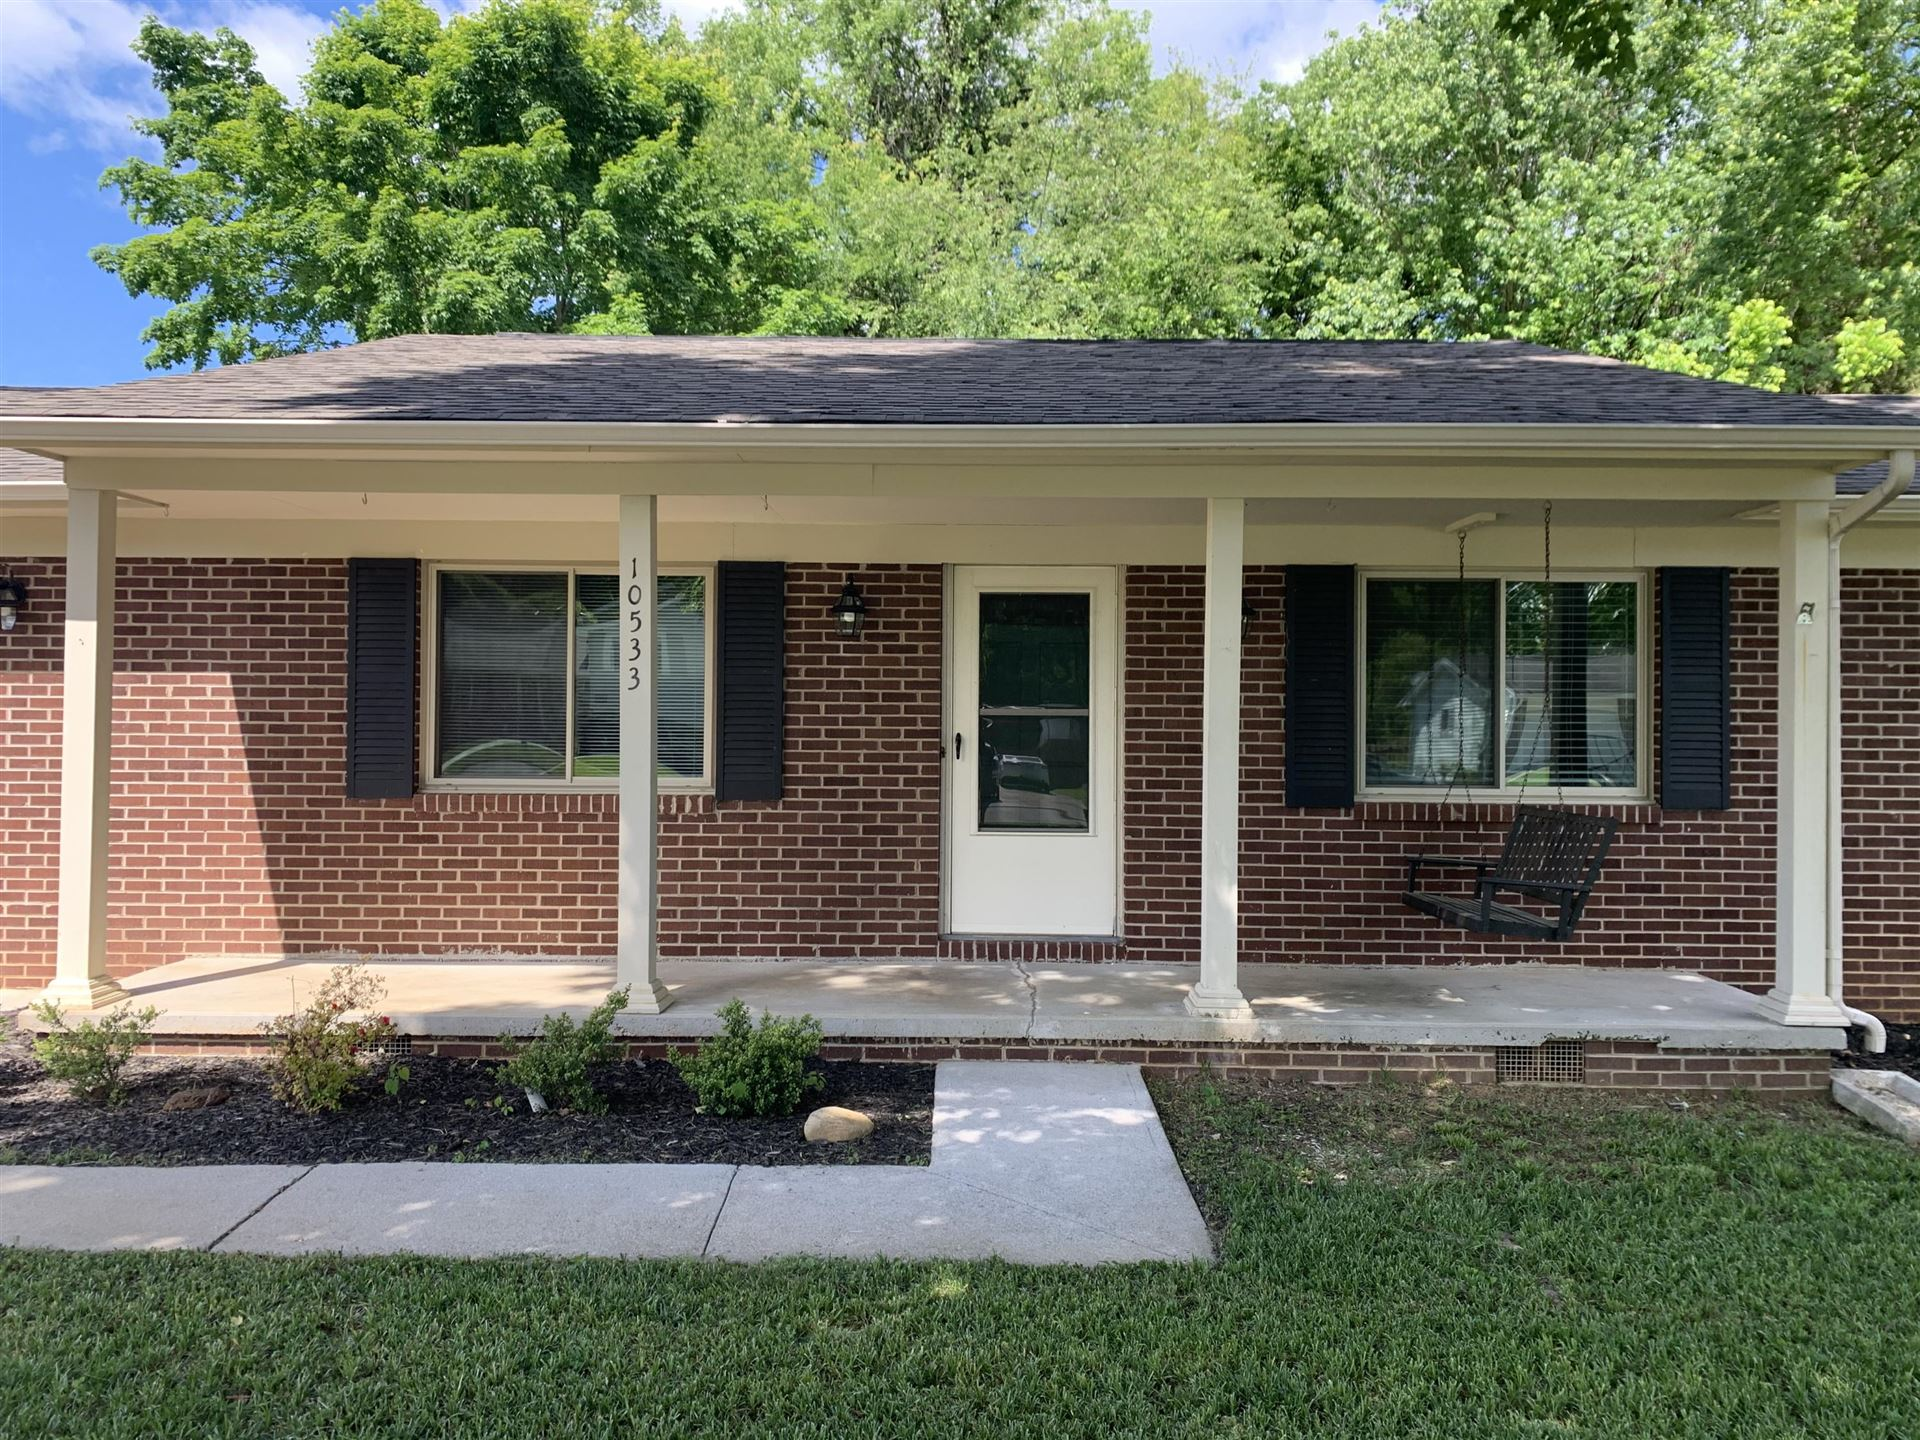 Photo of 10533 Blakewood Drive, Knoxville, TN 37922 (MLS # 1112567)